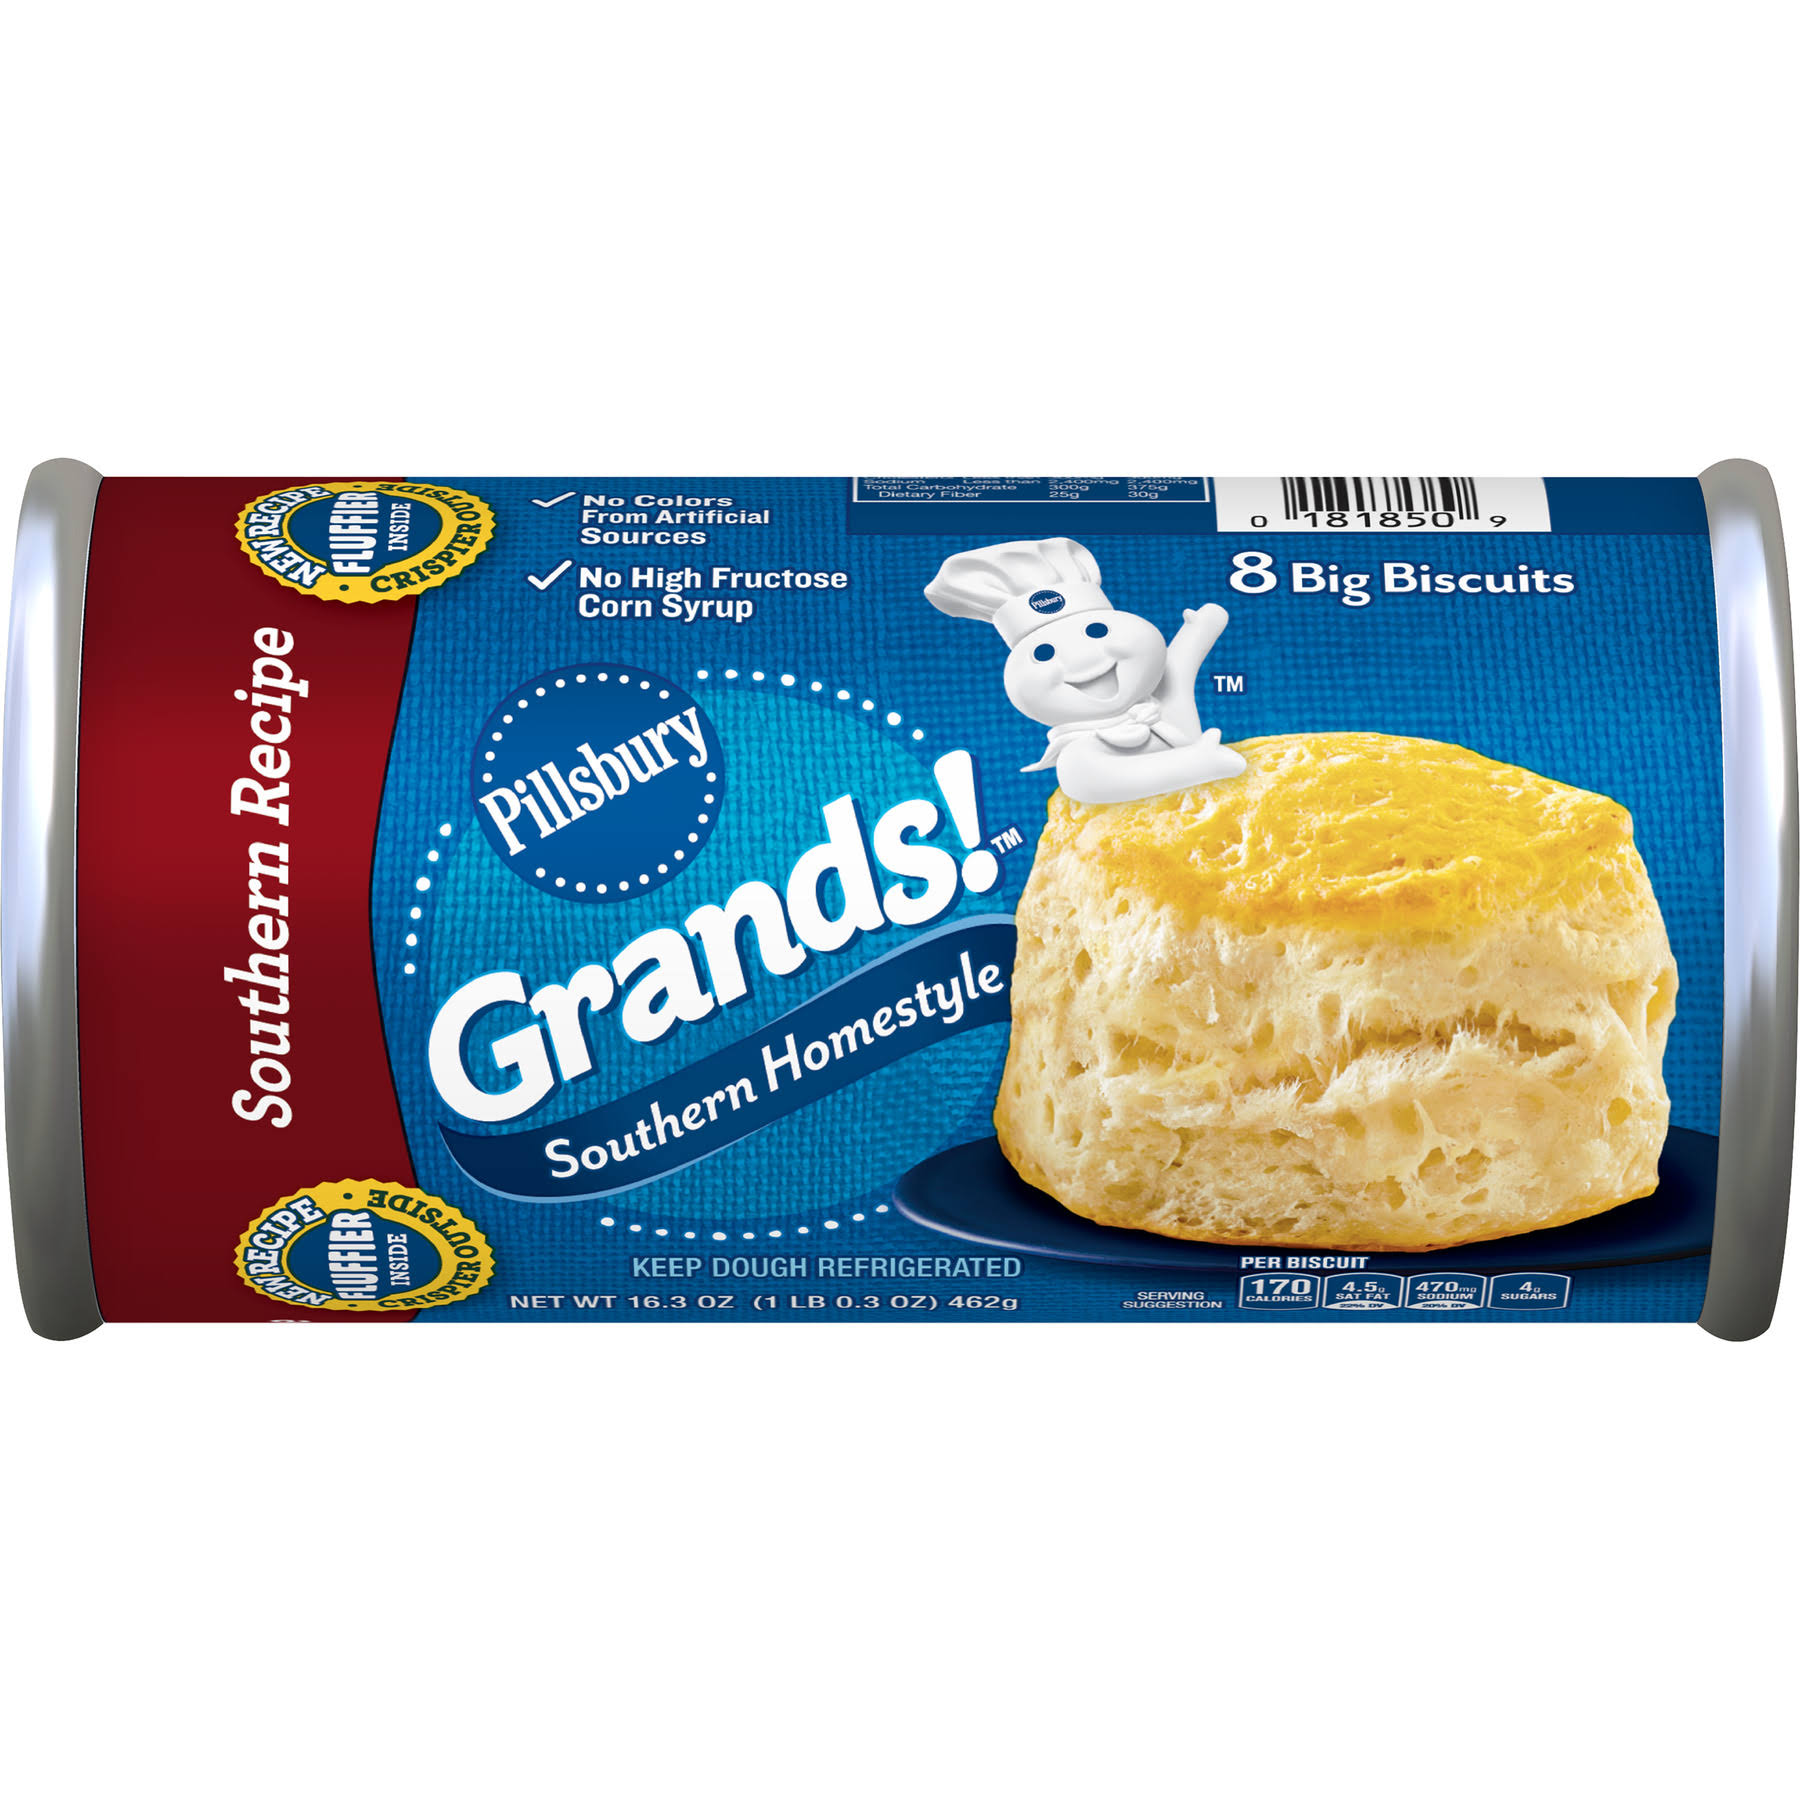 Pillsbury Grands Homestyle Big Biscuits - Southern Recipe, 8 Big Biscuits, 462g